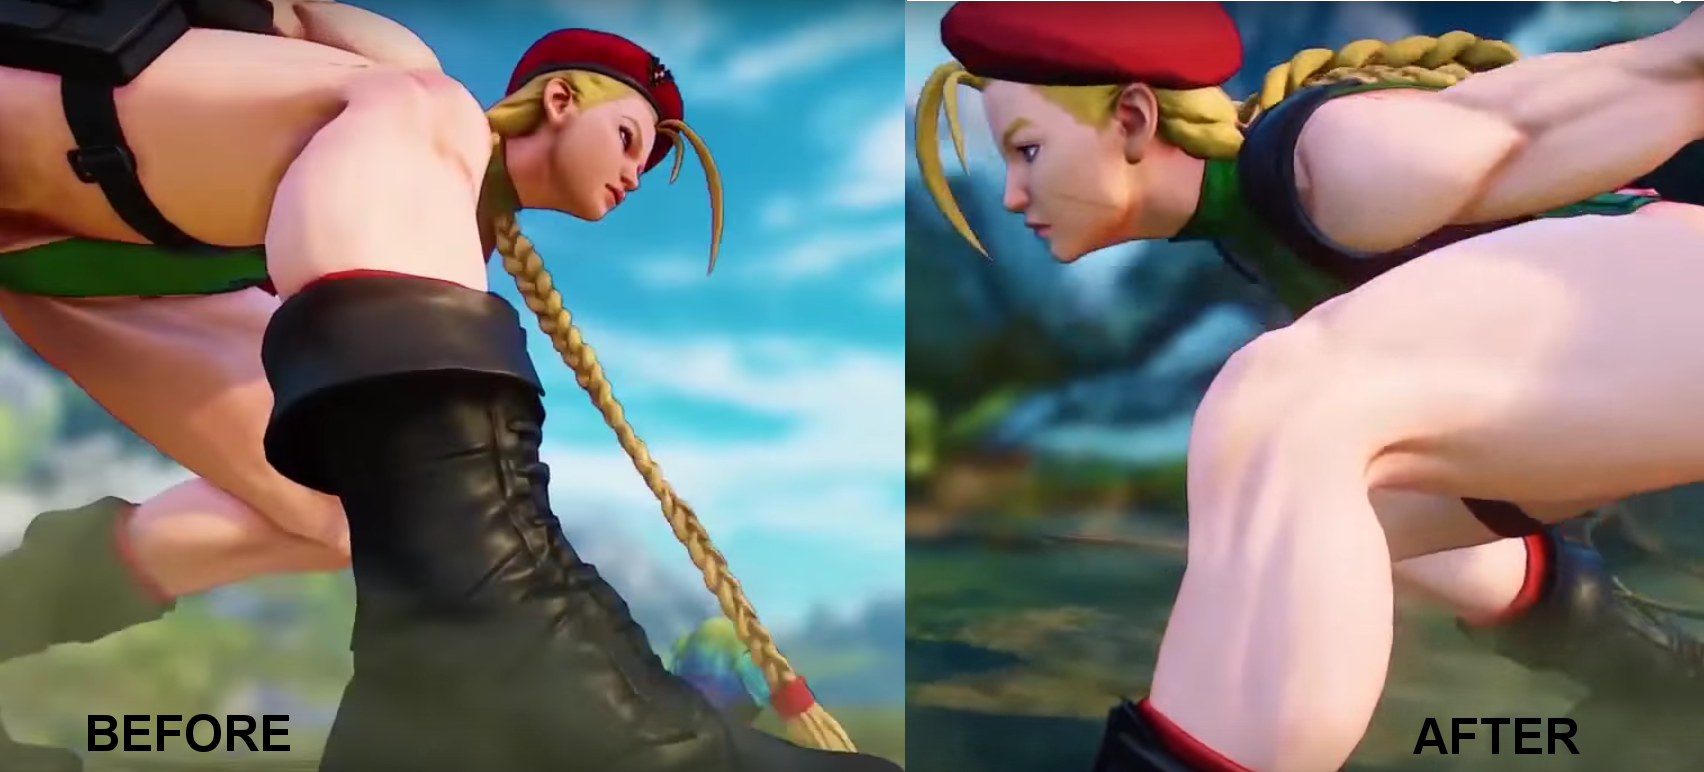 cammy-before-after